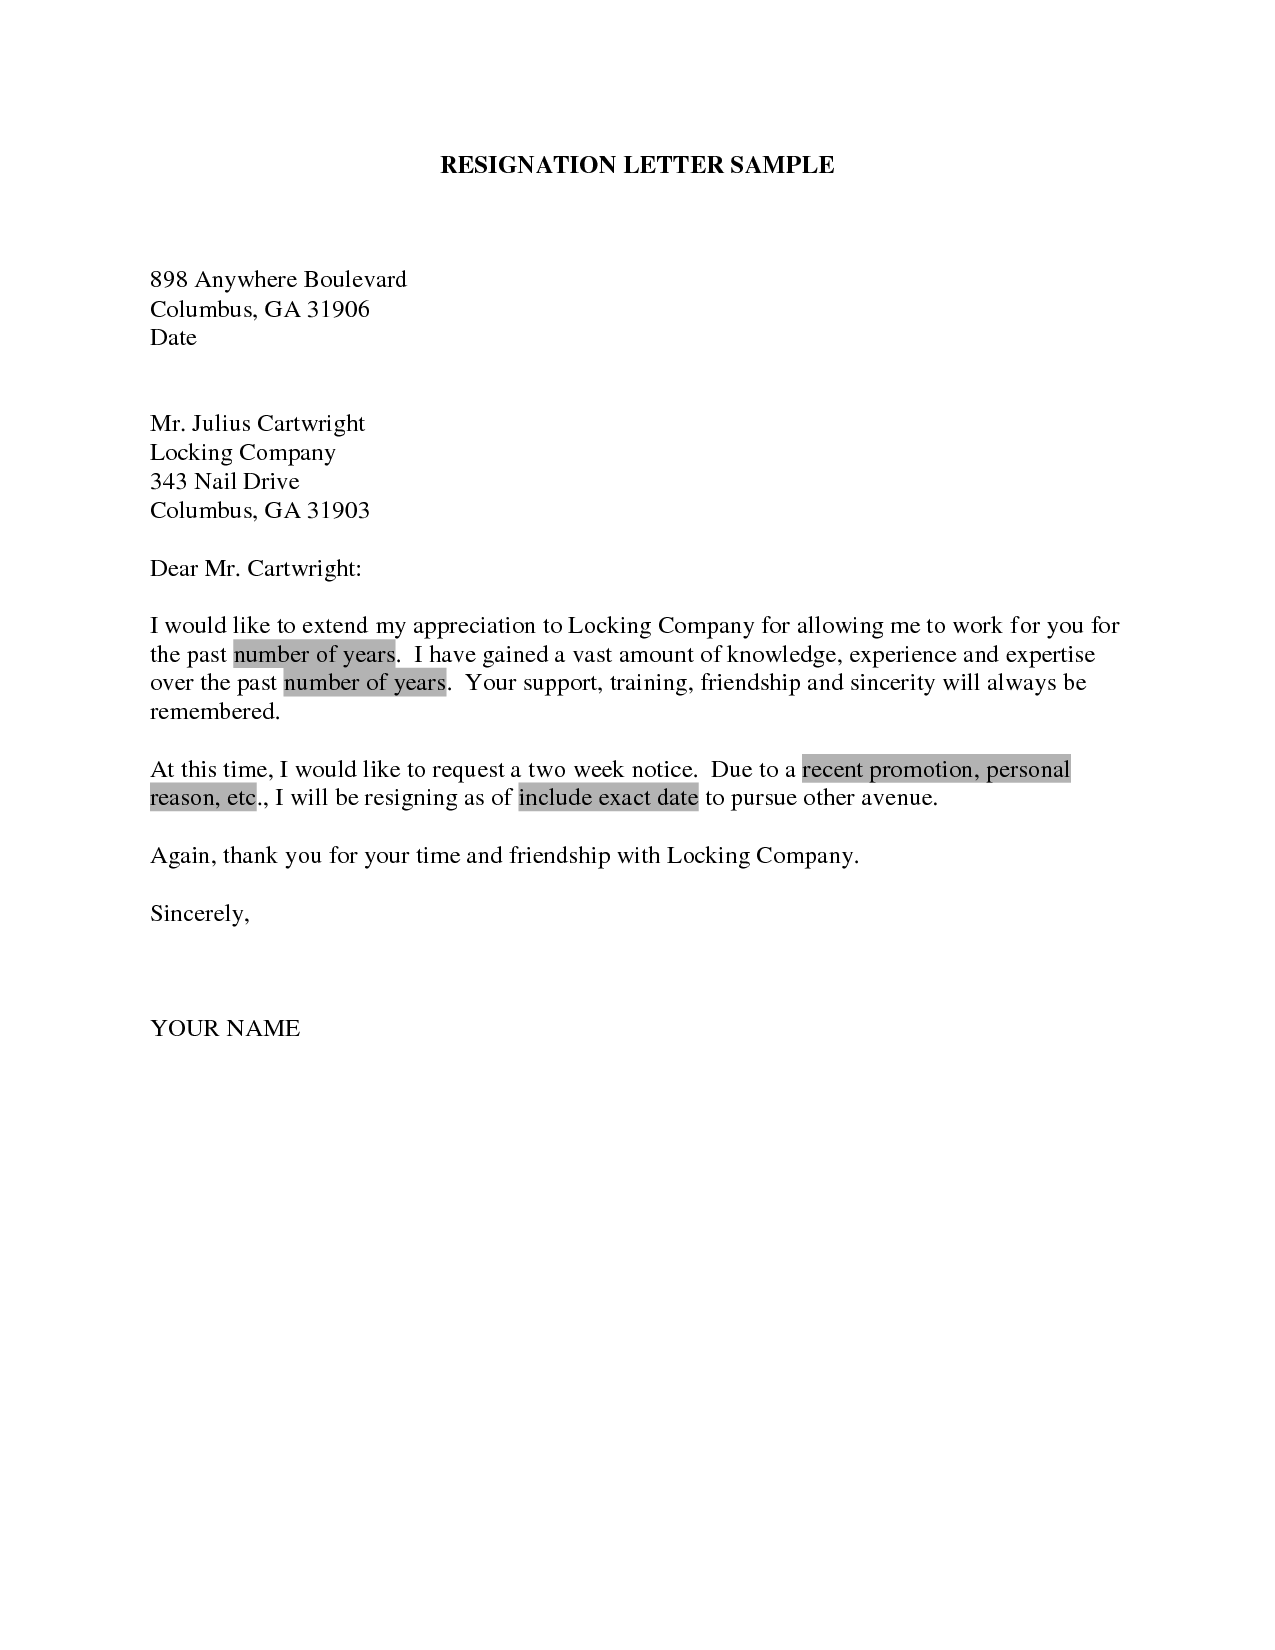 example of resignation letter due to personal reasons writing a resignation letter due to personal reasons 21579 | 5a1263ec2fc178cf94a84dc307ddb893